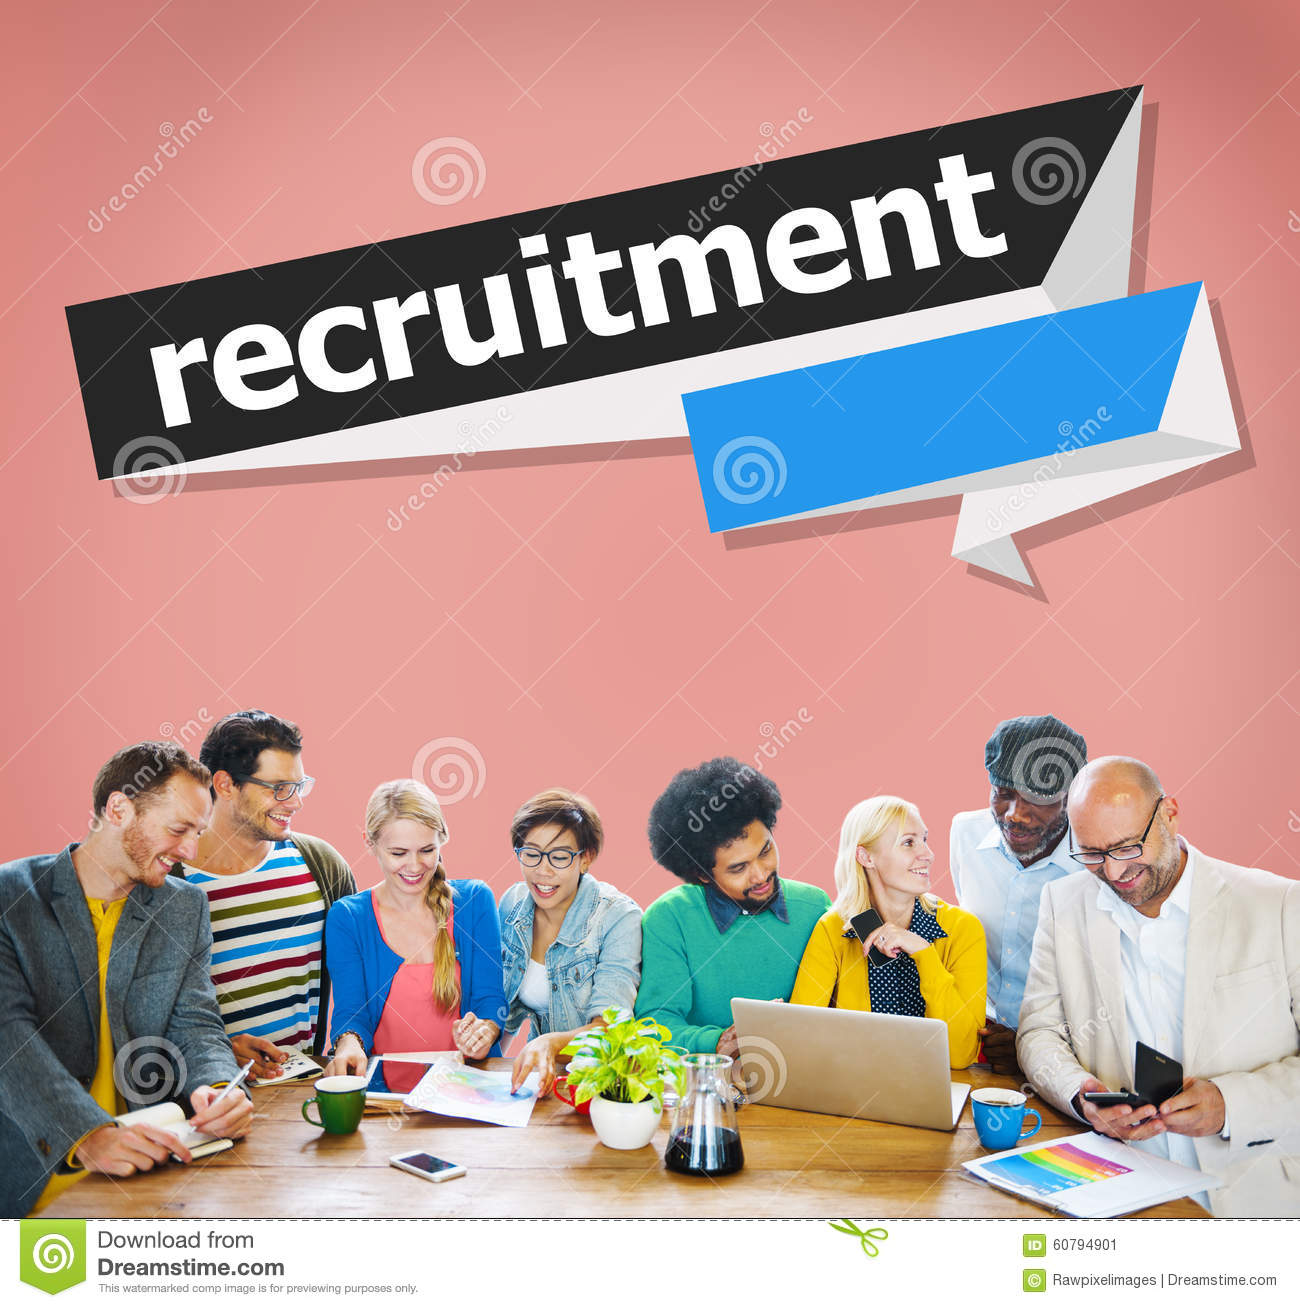 human resources recruitment The recruitment process is an important part of human resource management (hrm) it isn't done without proper strategic planning recruitment is defined as a process that provides the organization with a pool of qualified job candidates from which to choose.